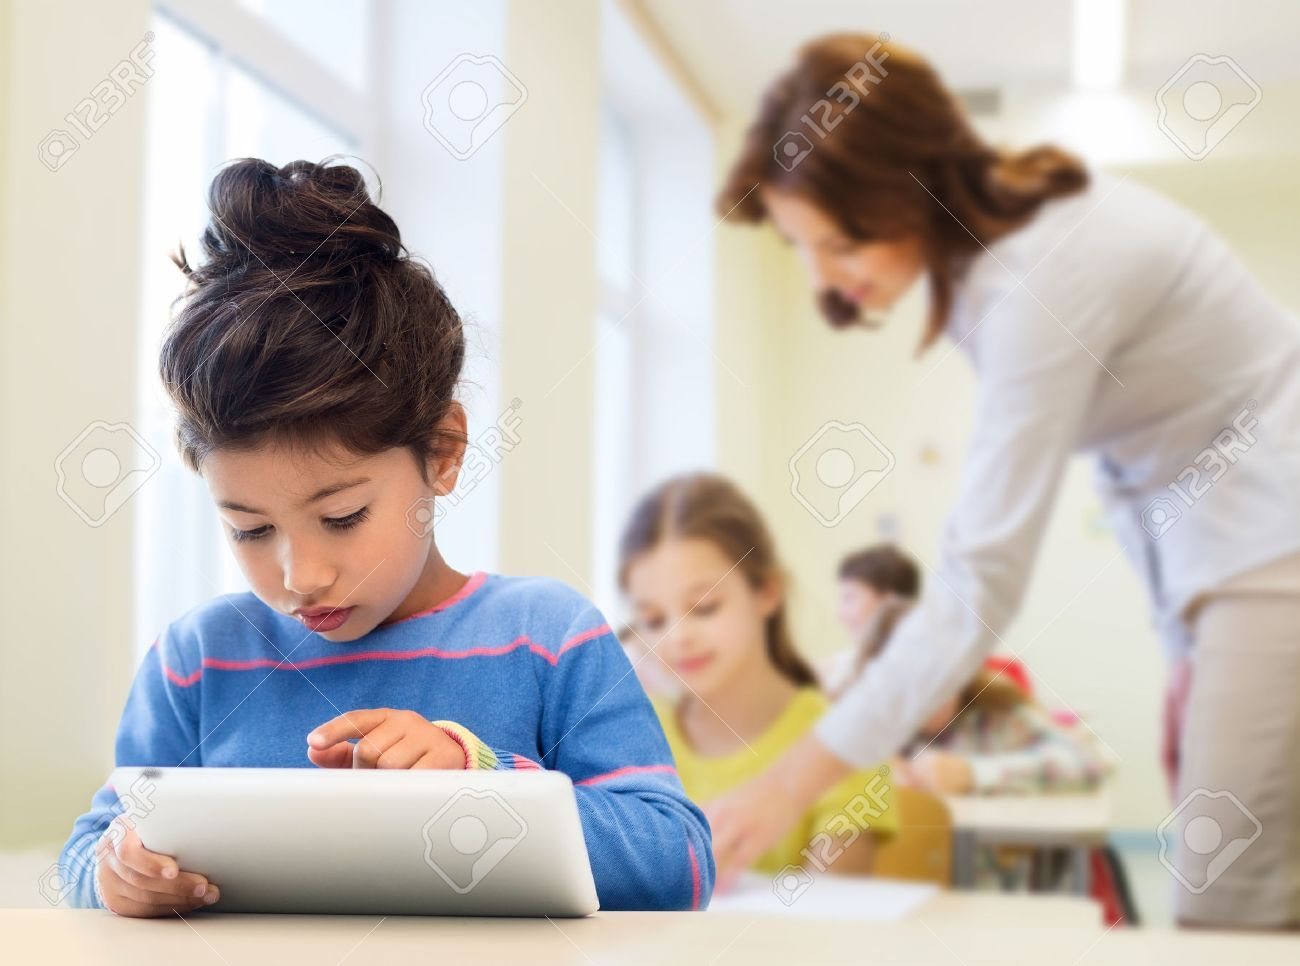 Education Elementary School Technology And Children